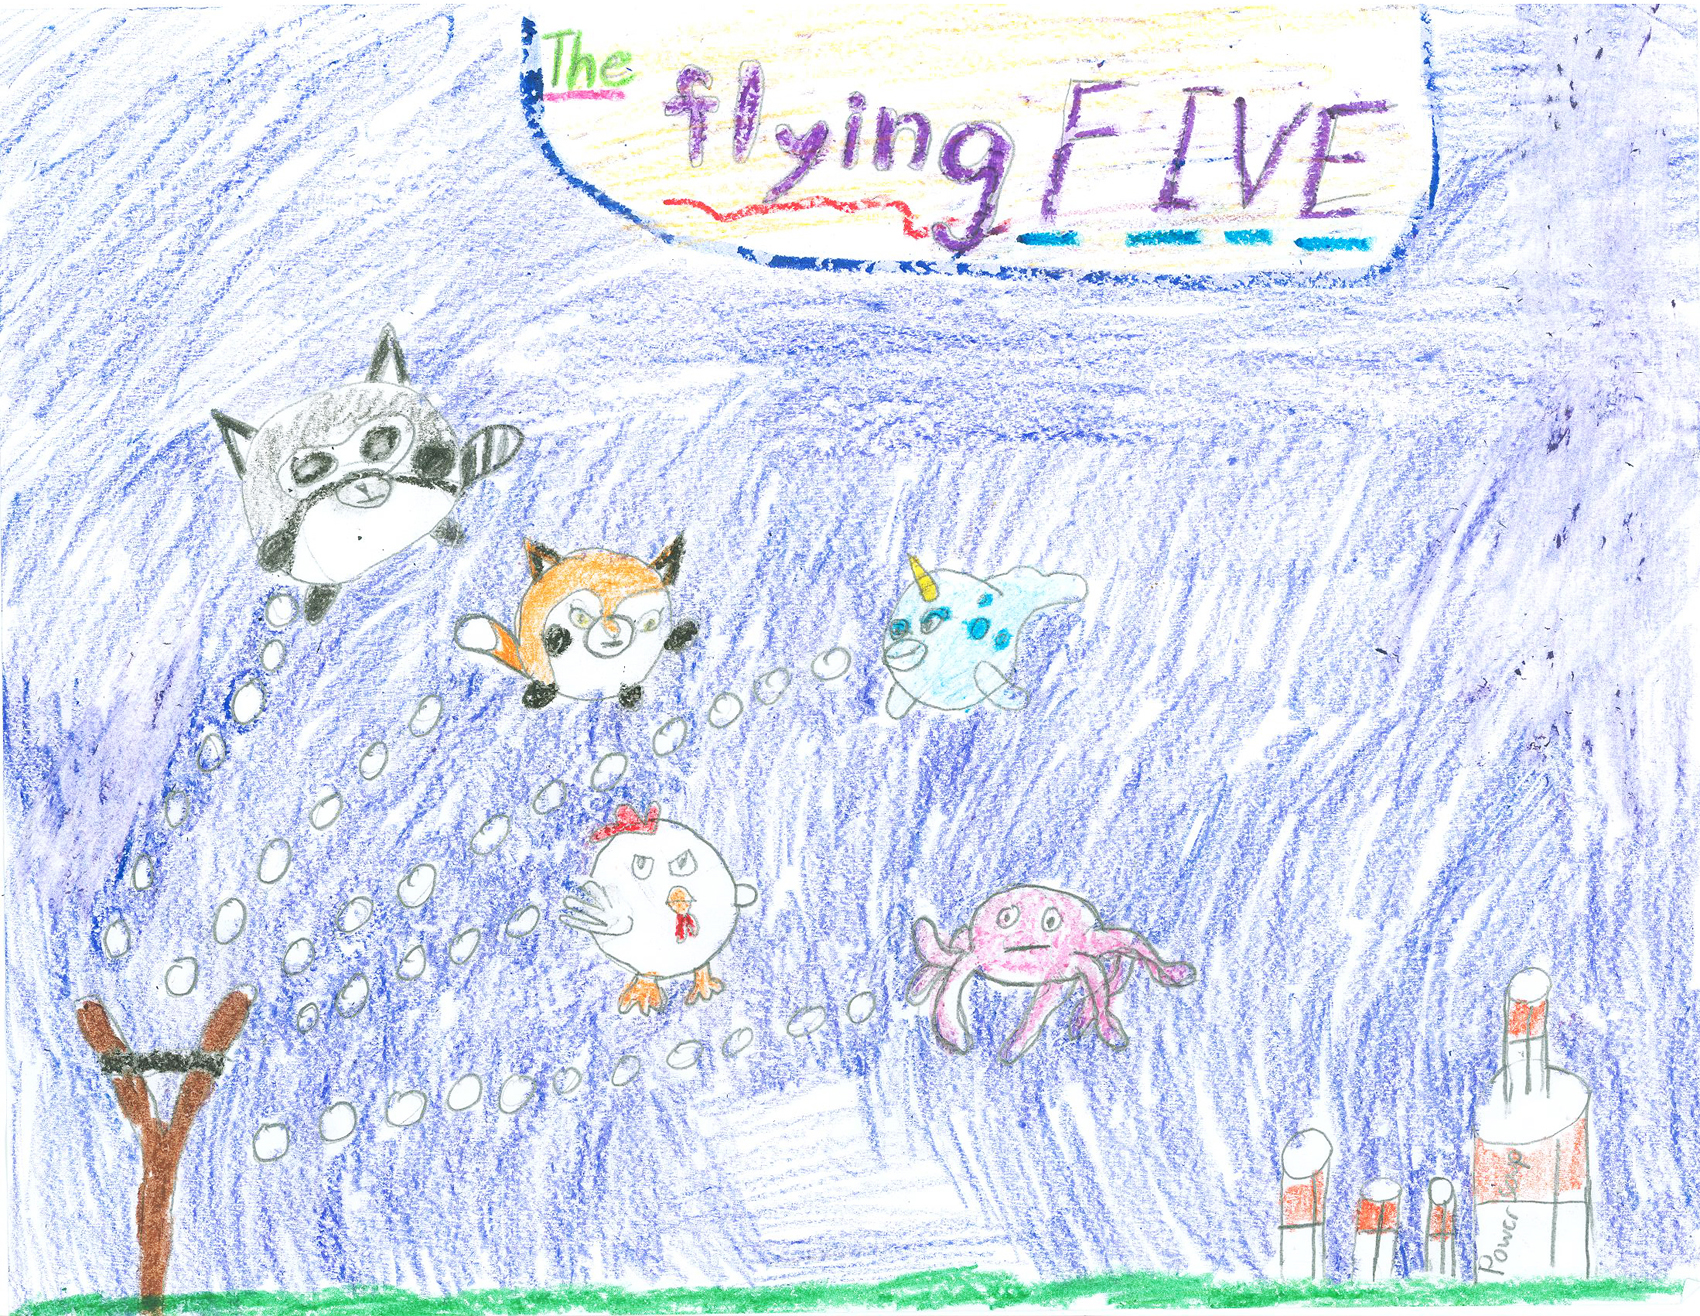 The Flying Five